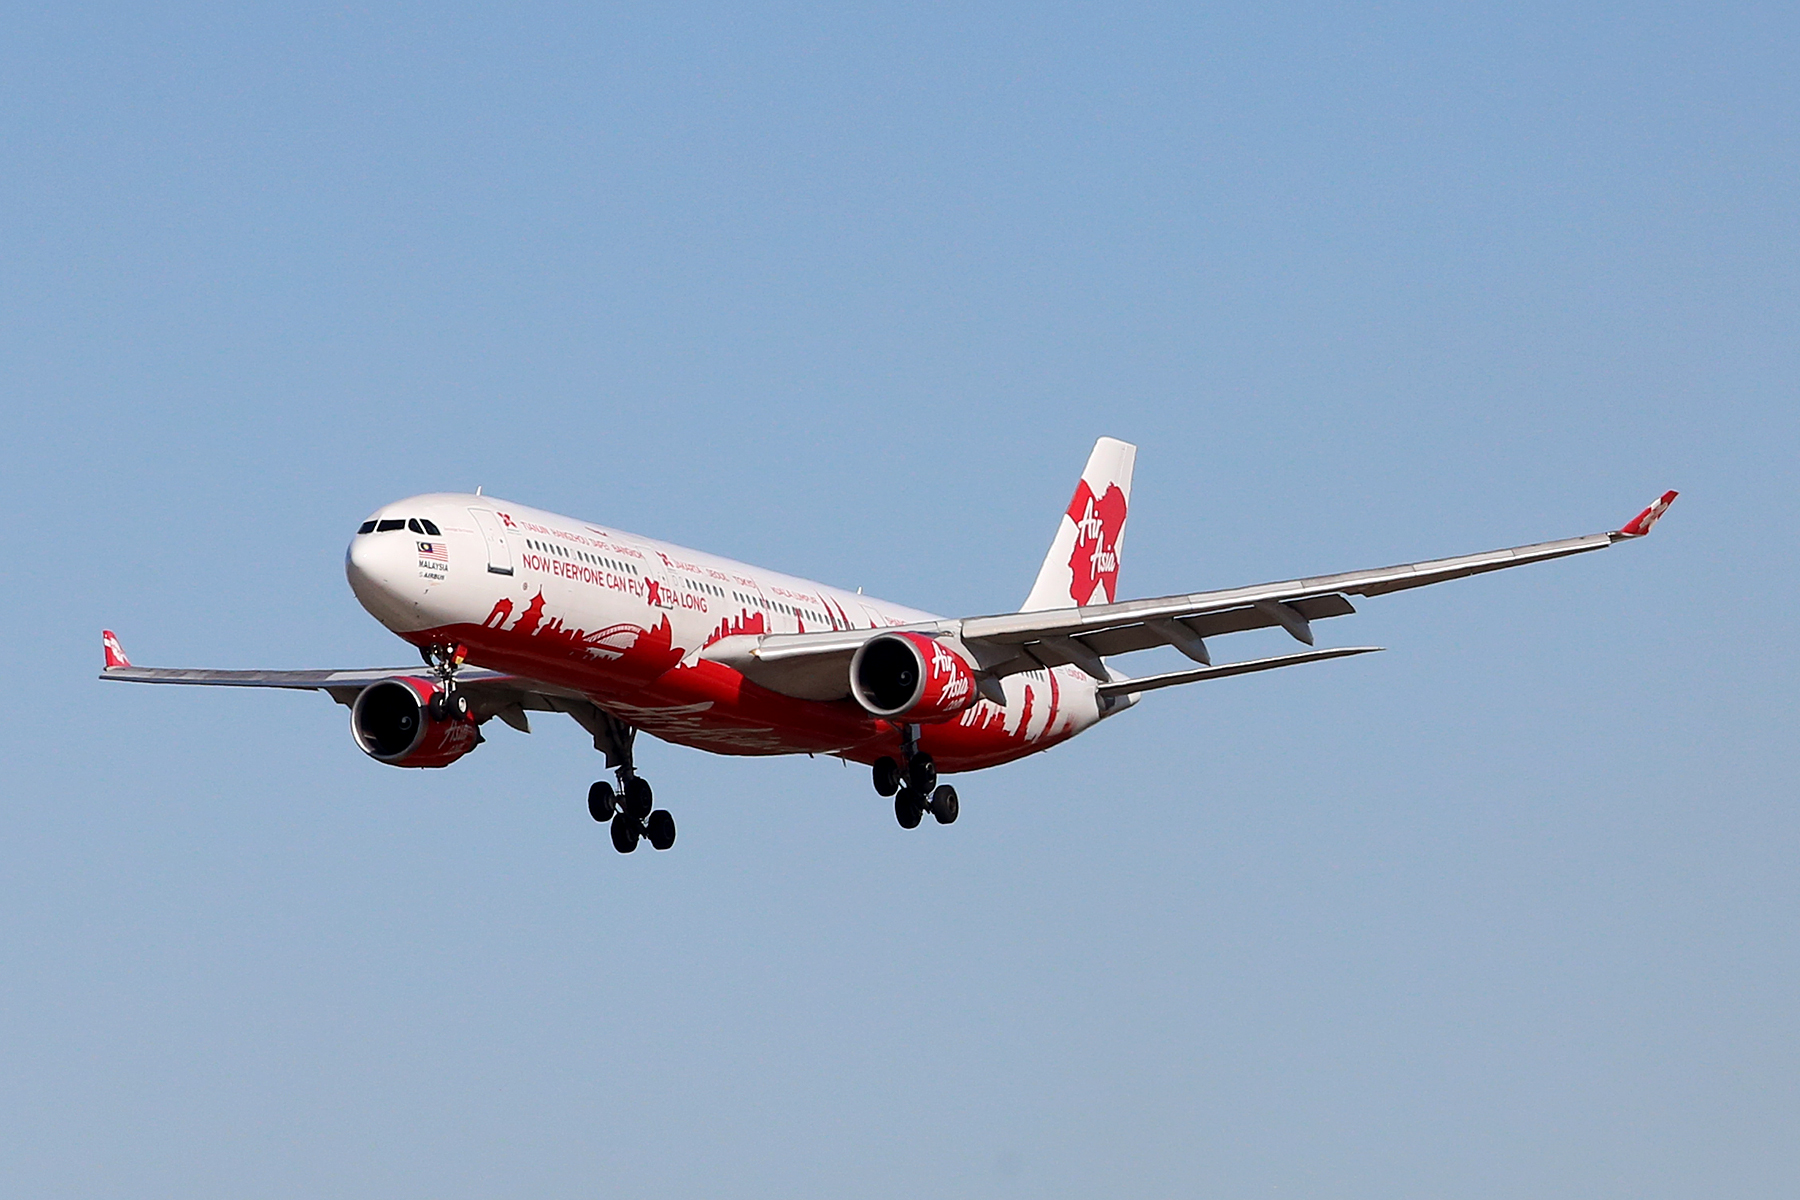 9M-XAA Airbus A330-301 (MSN 054) of Air Asia X in World Cities livery at Perth Airport – Mon 4 Aug 2014